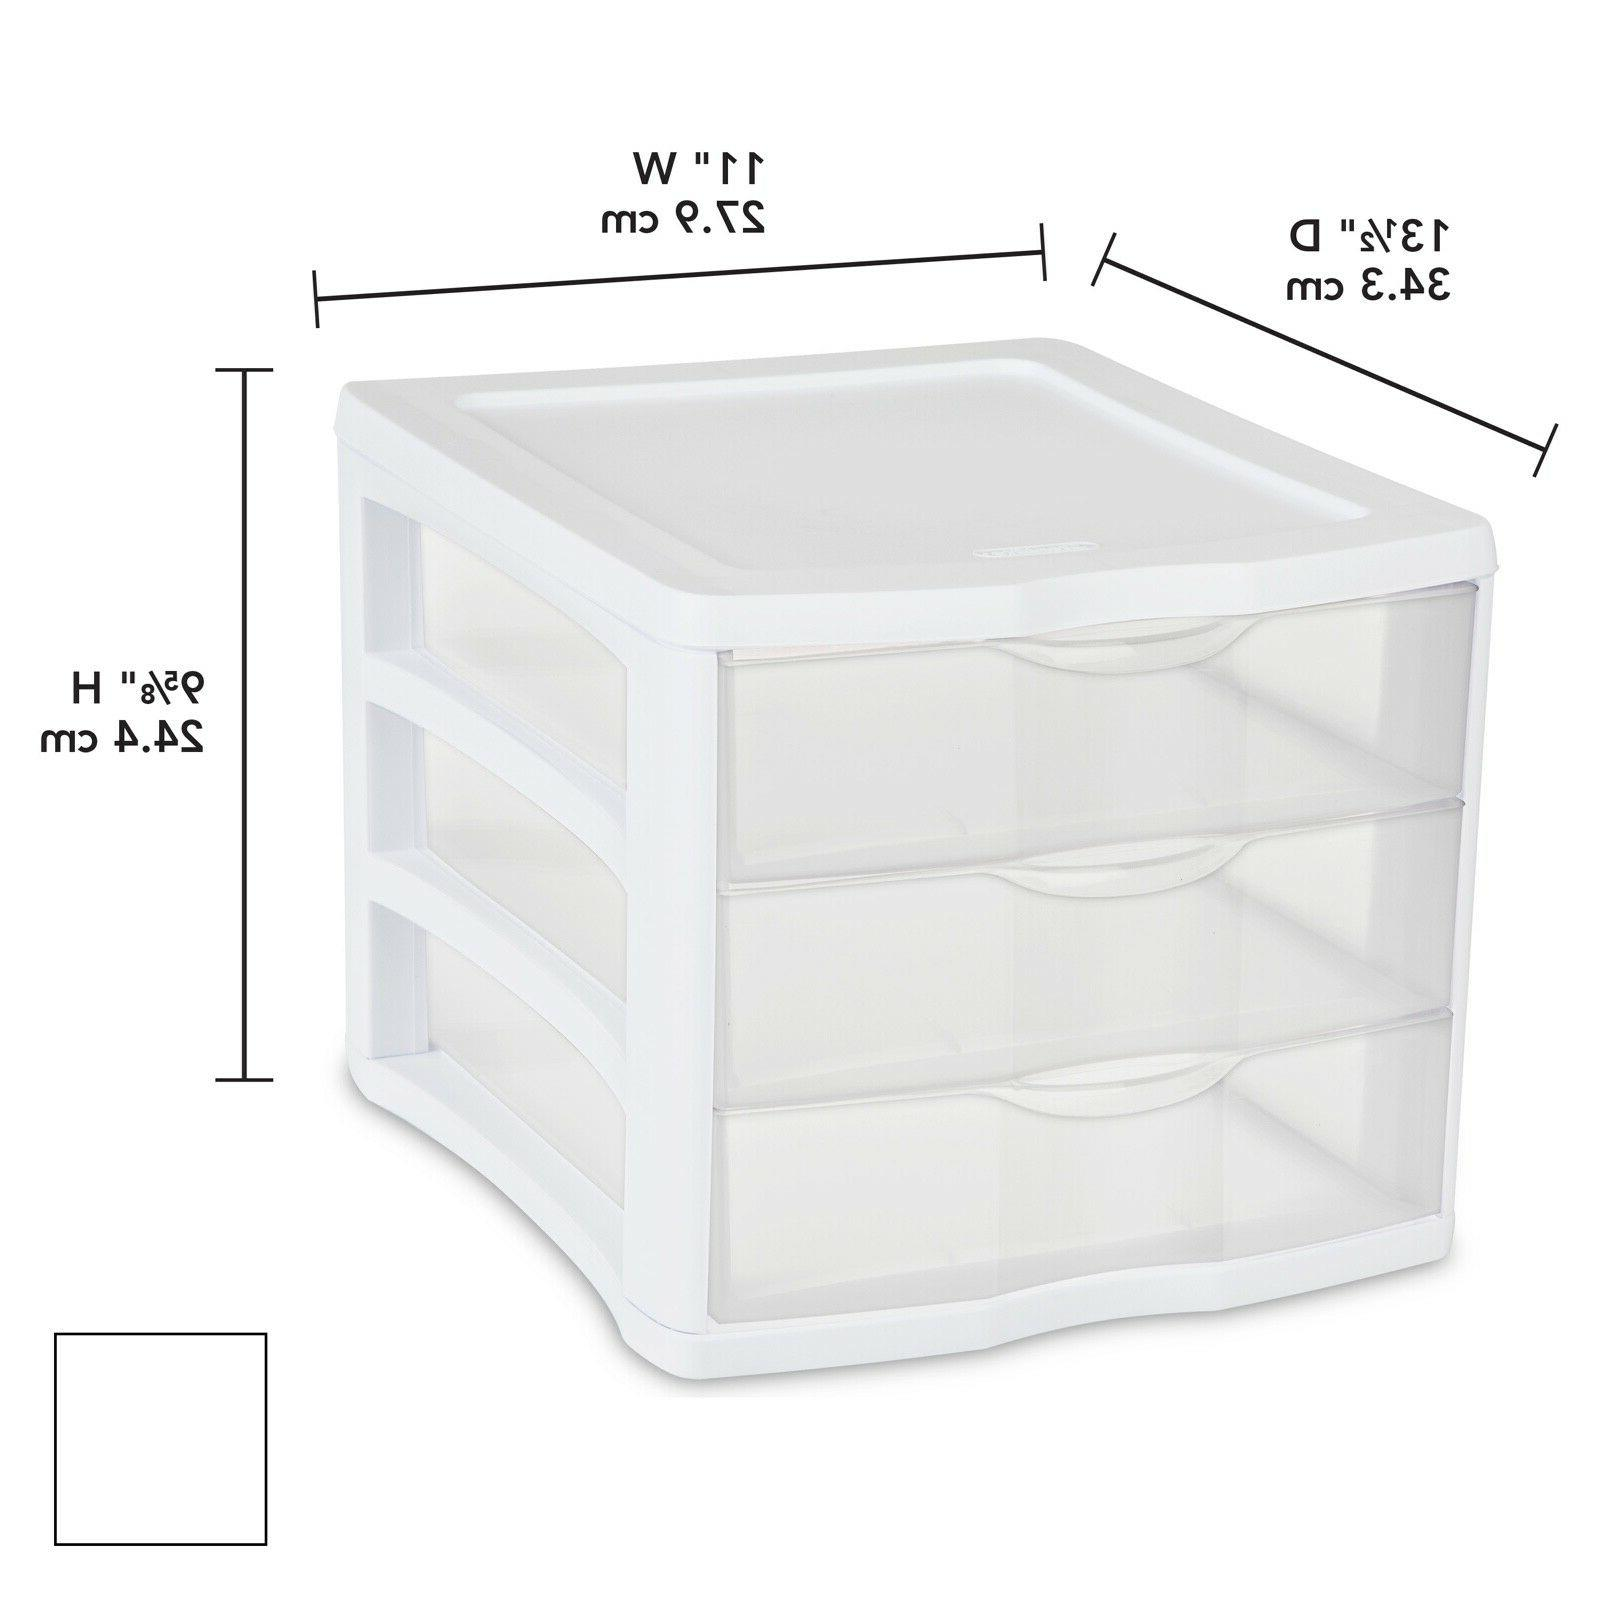 4-PACK Plastic Drawer Unit, White Frame, Drawers Small Storage Box